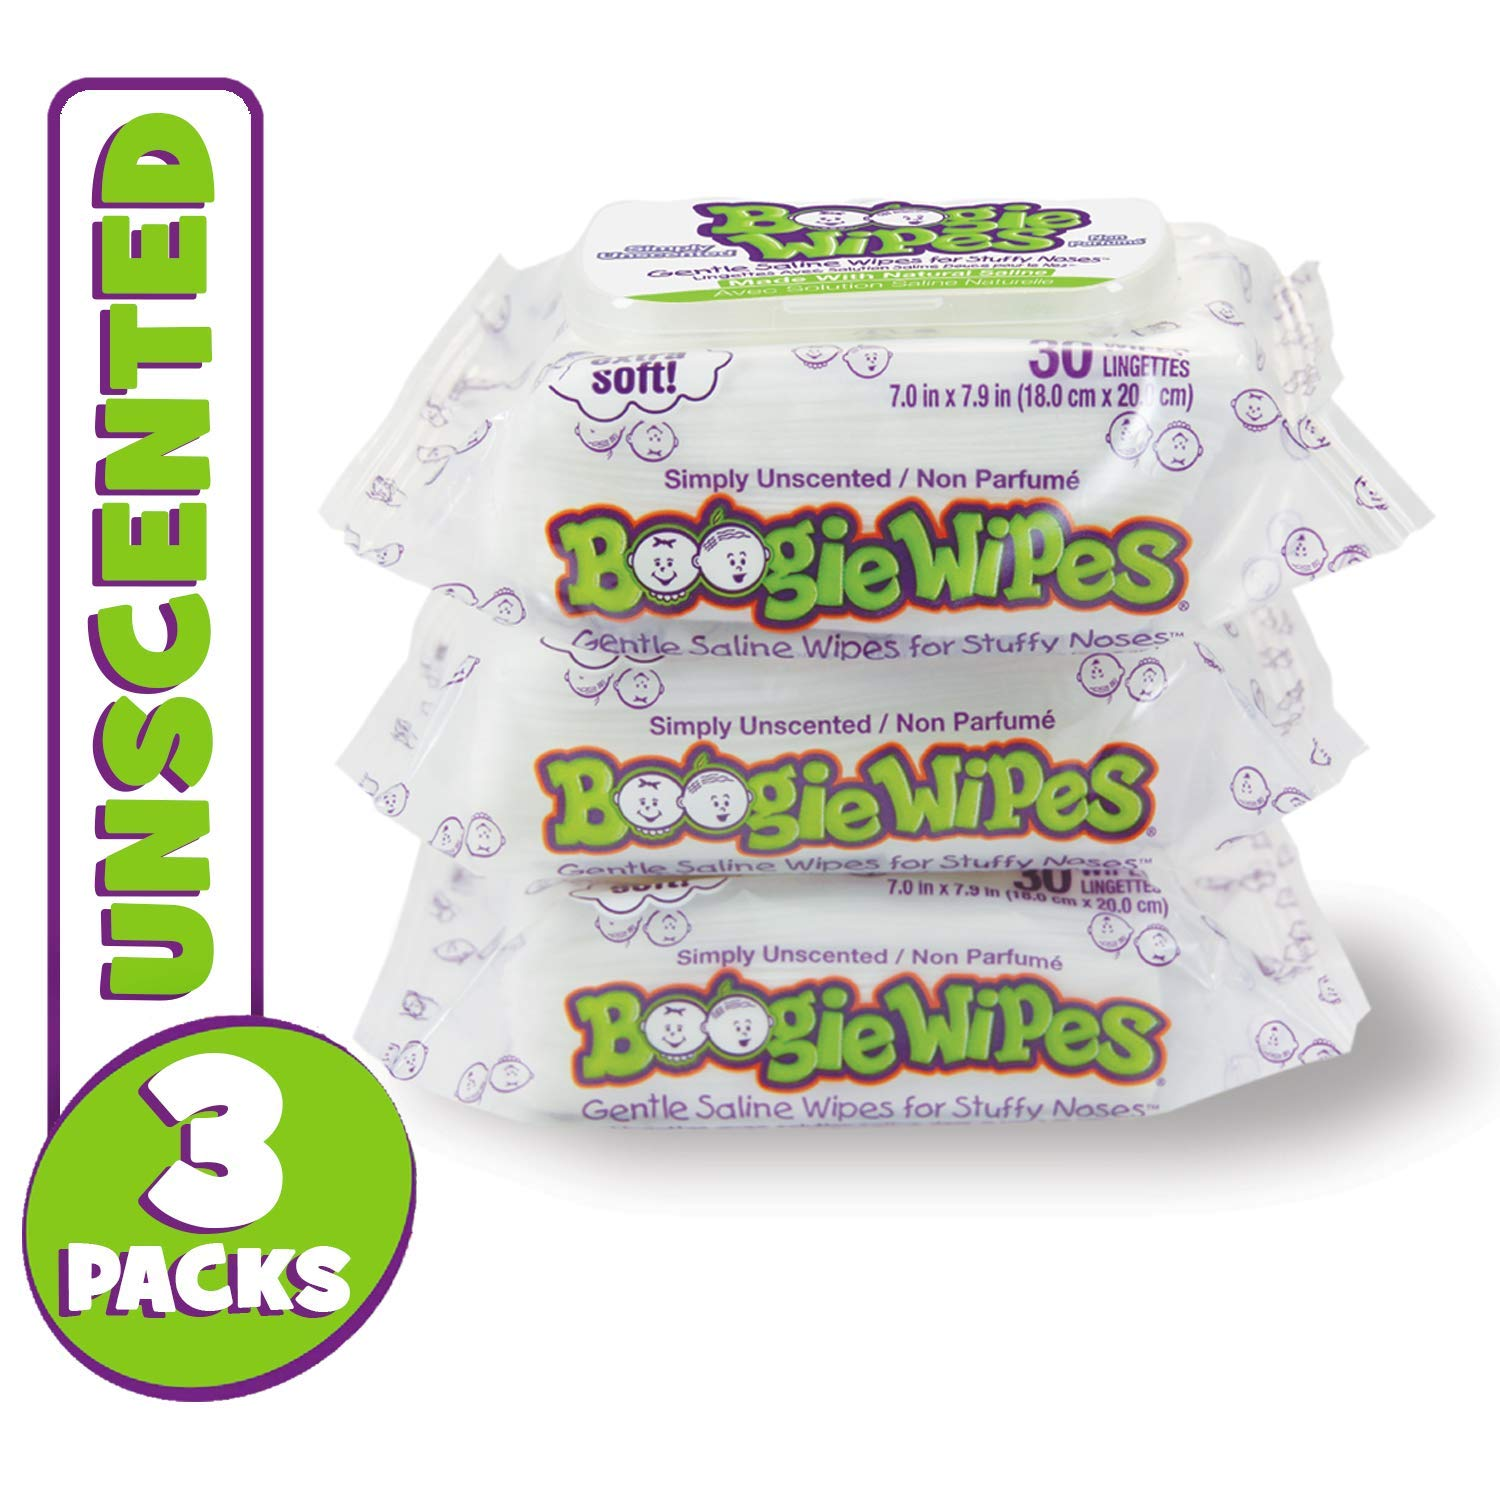 Boogie Wipes, Unscented Wet Wipes for Baby and Kids, Nose, Face, Hand and Body, Soft and Sensitive Tissue Made with Natural Saline, Aloe, Chamomile and Vitamin E, 30 Count (Pack of 3) by Boogie Wipes